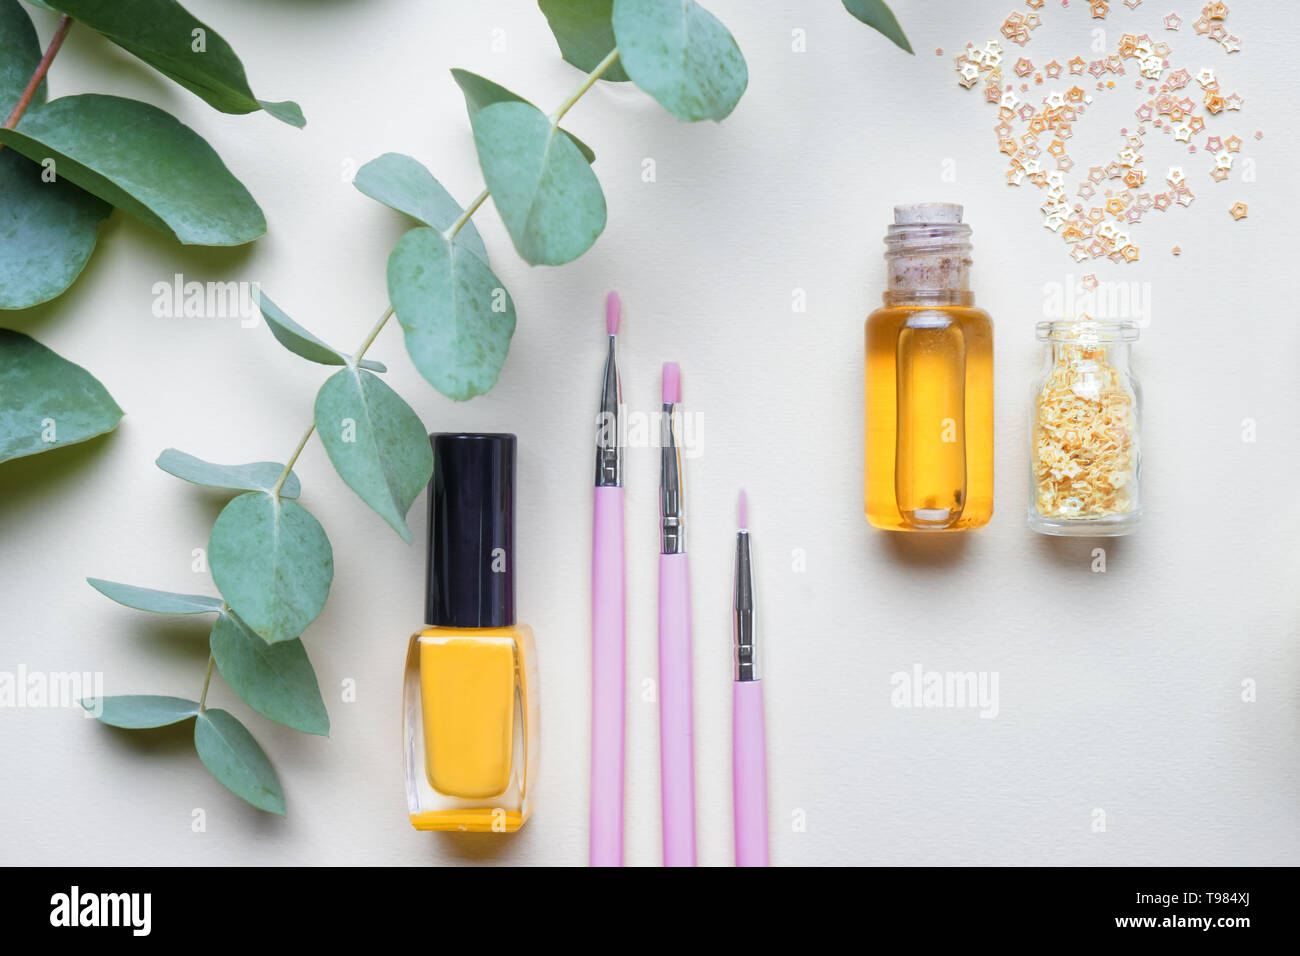 Composition with cosmetic products on light background - Stock Image